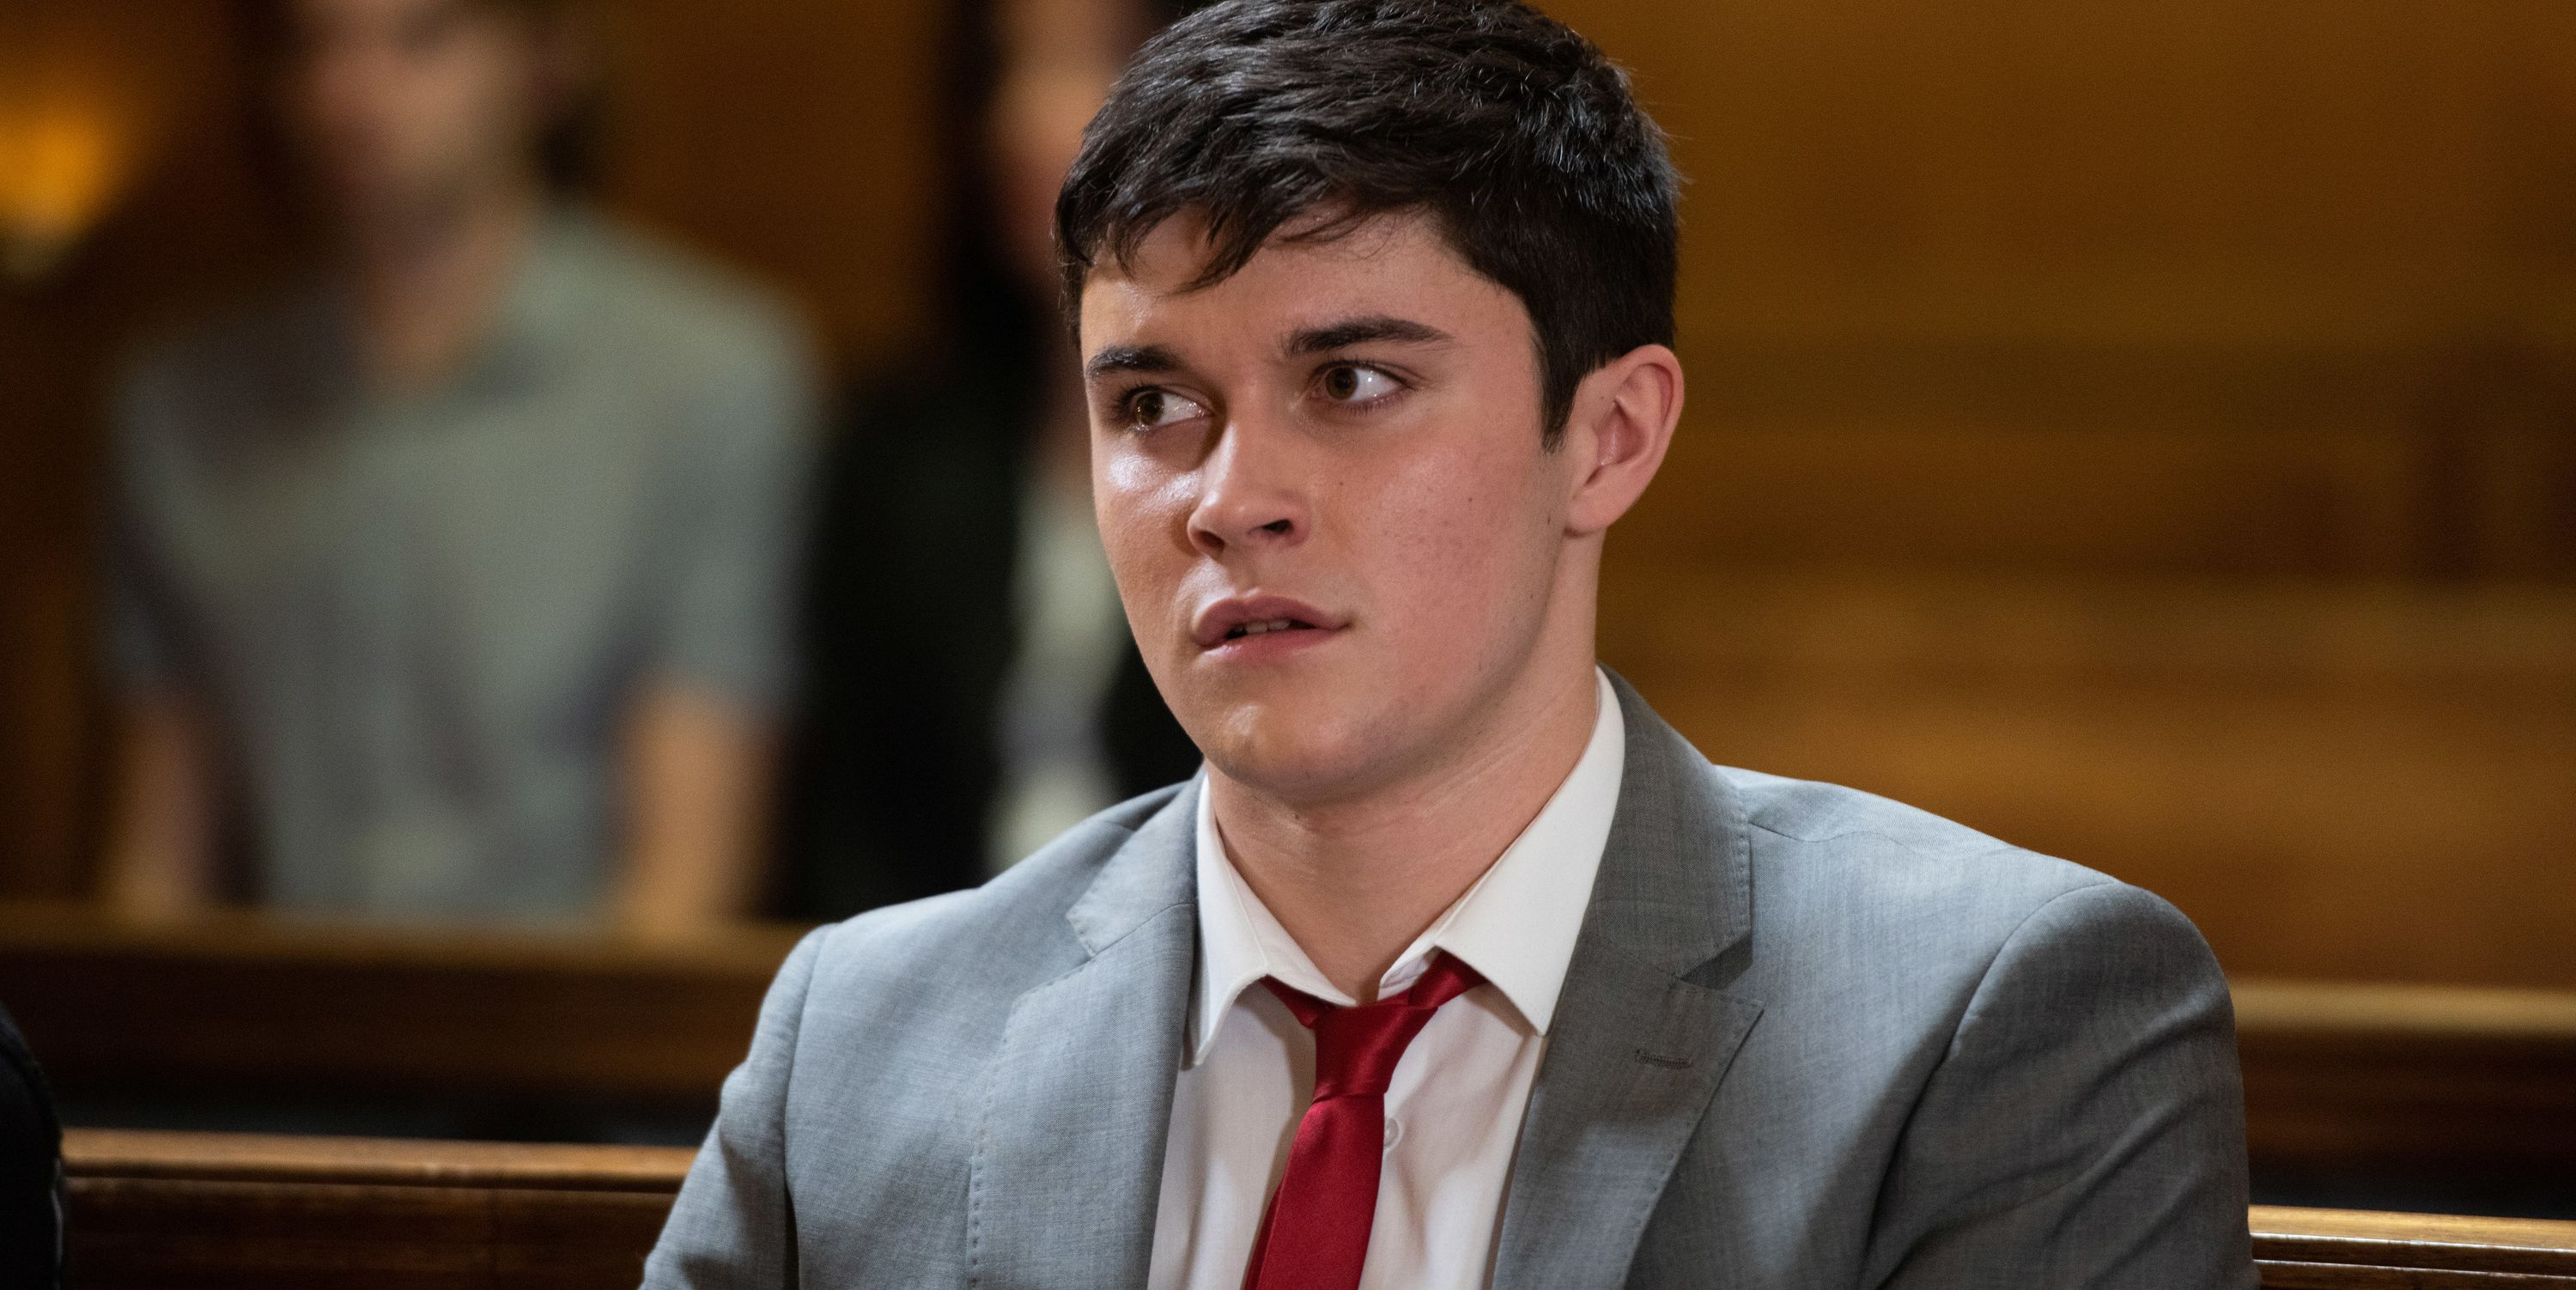 Ollie Morgan in court in Hollyoaks